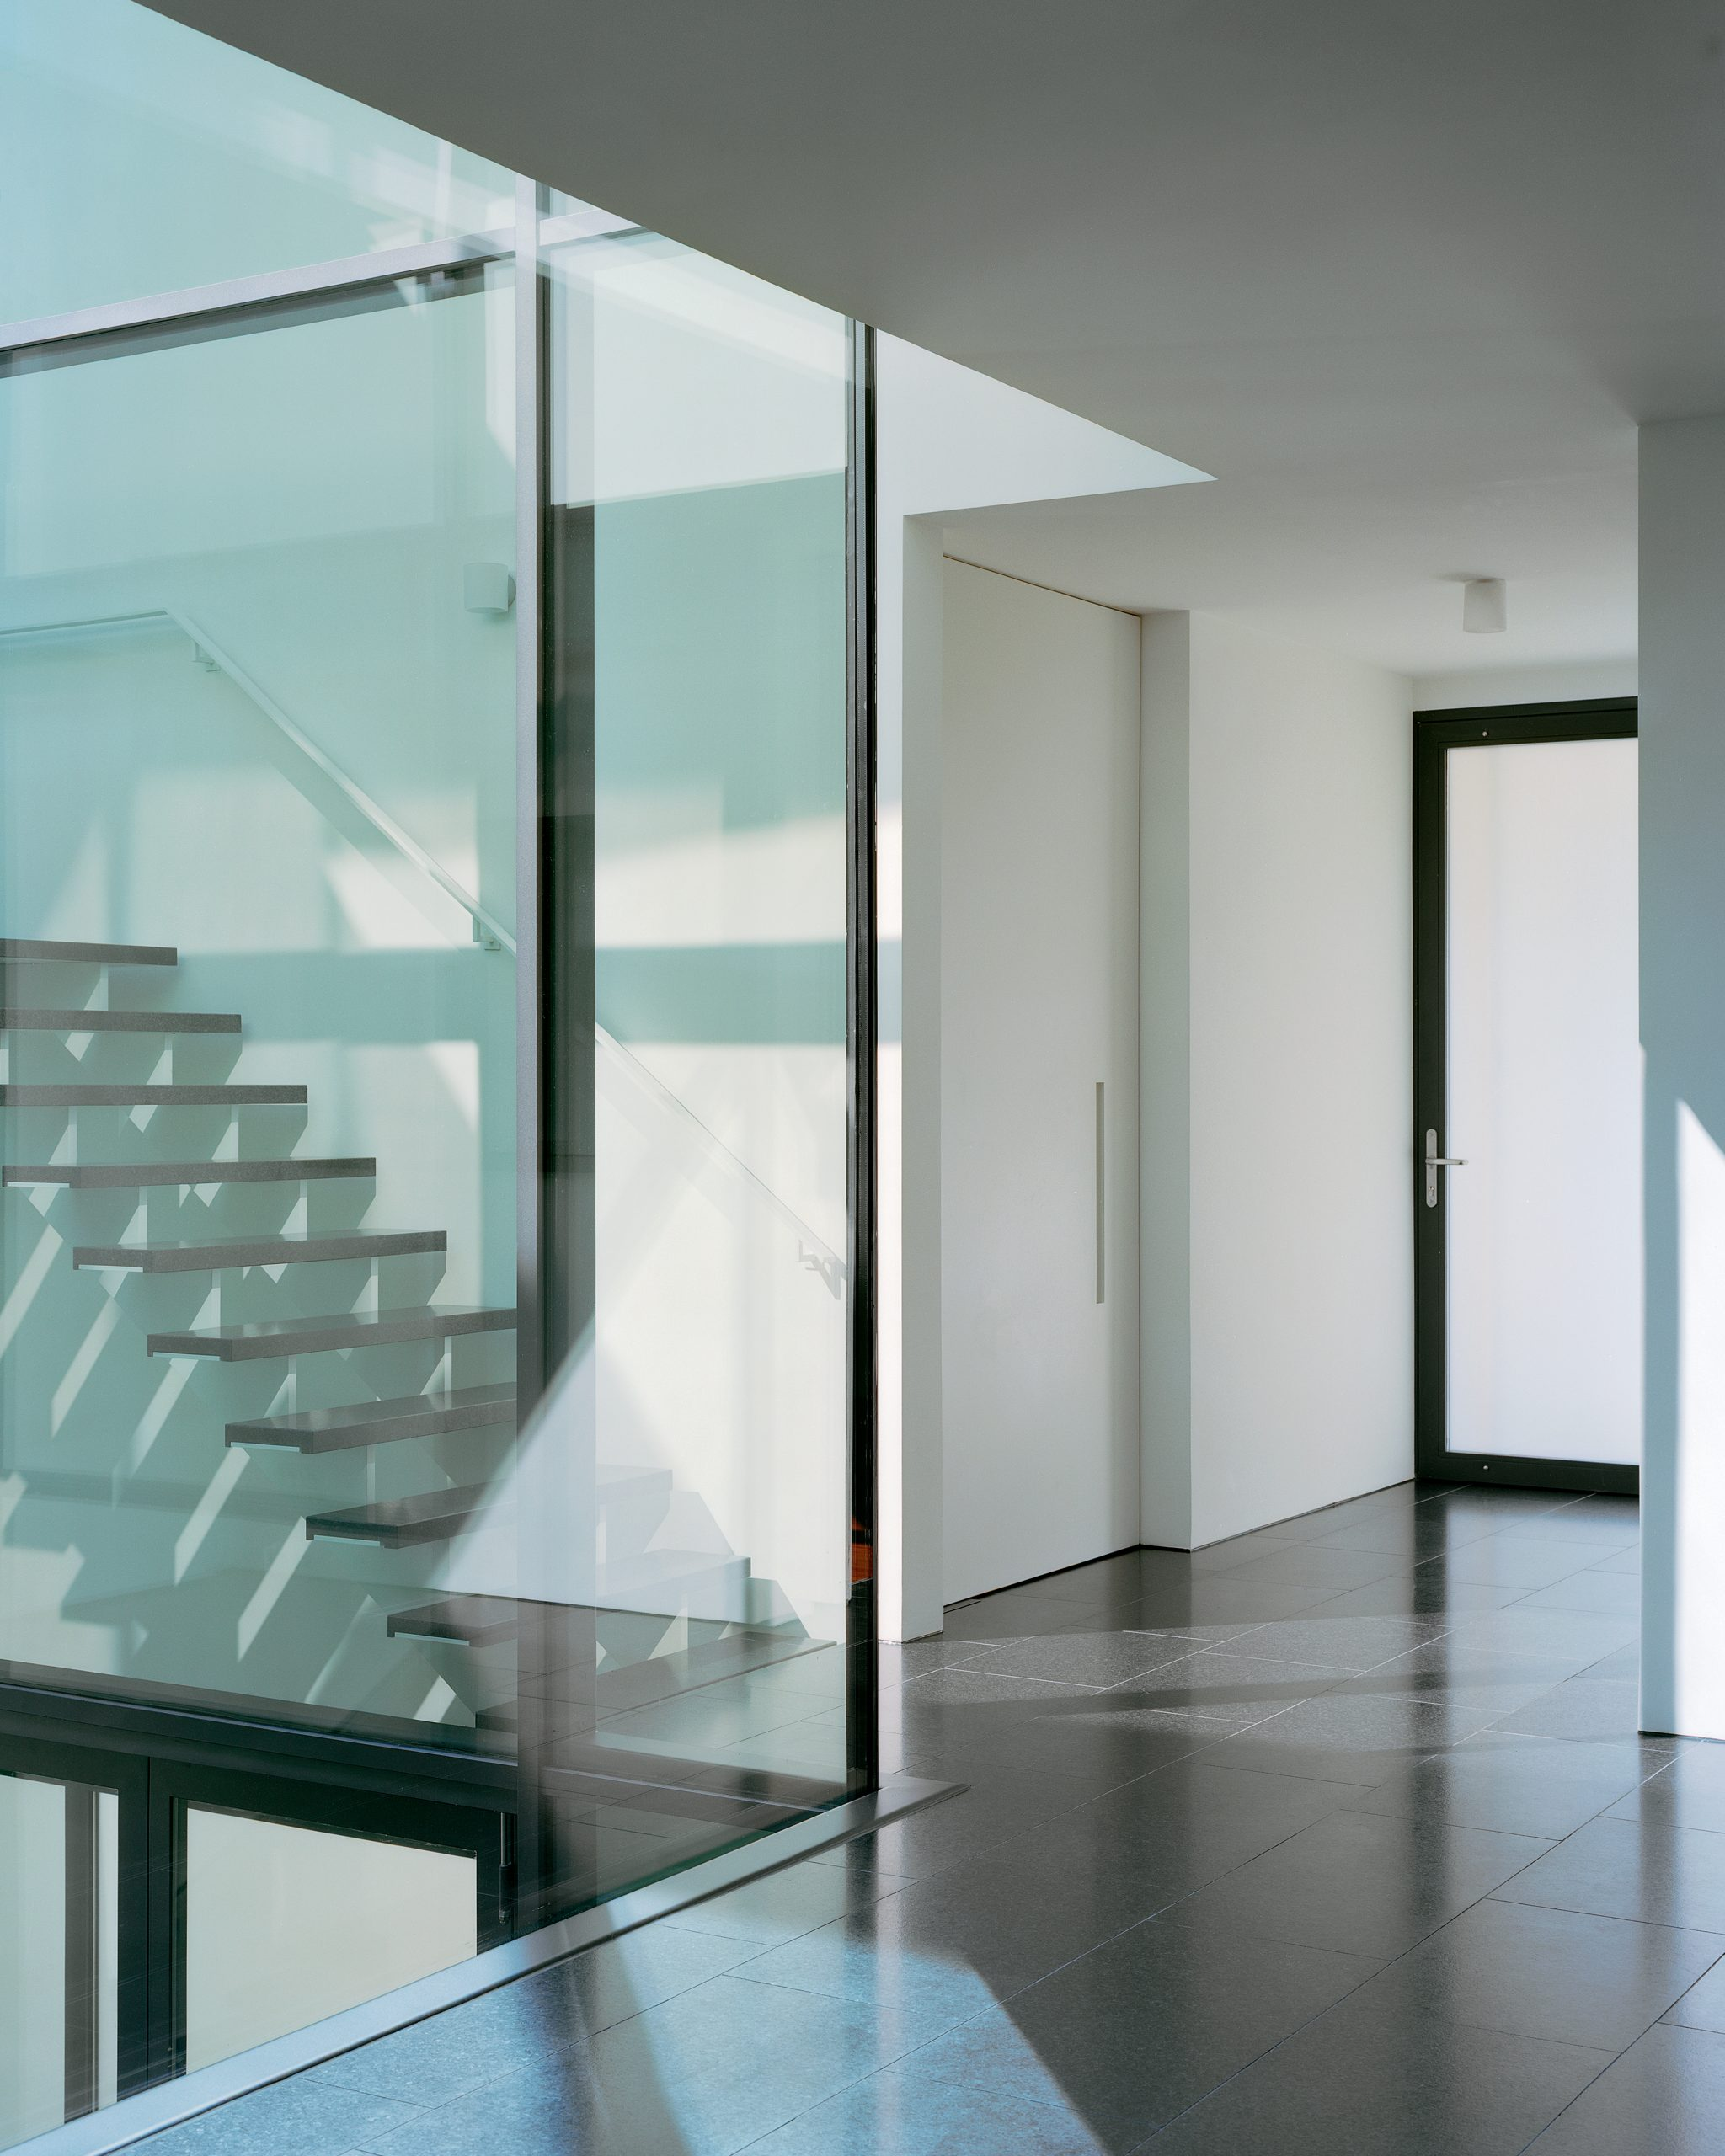 Green zone staircase